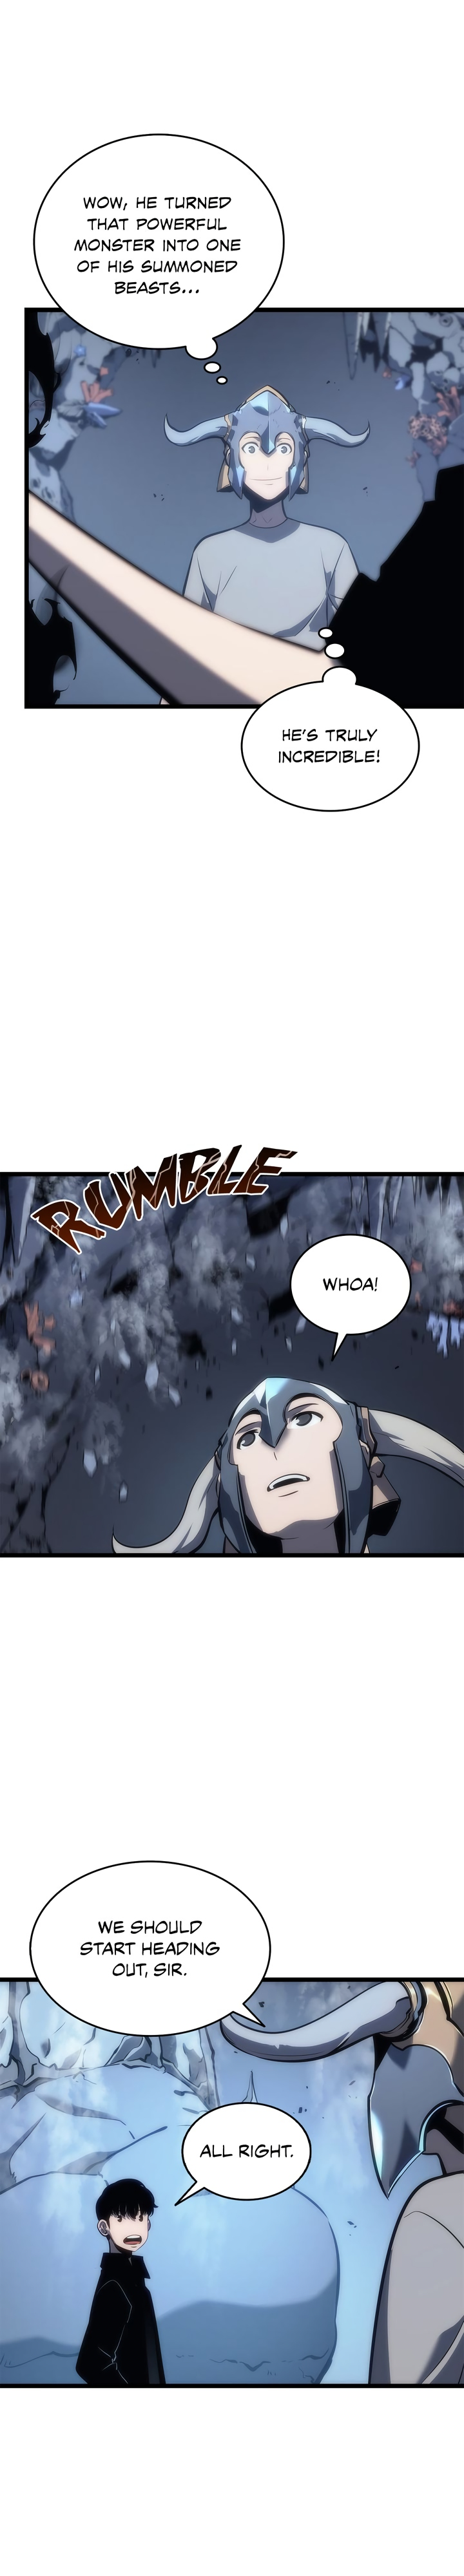 Solo Leveling Chapter 122 Page 30